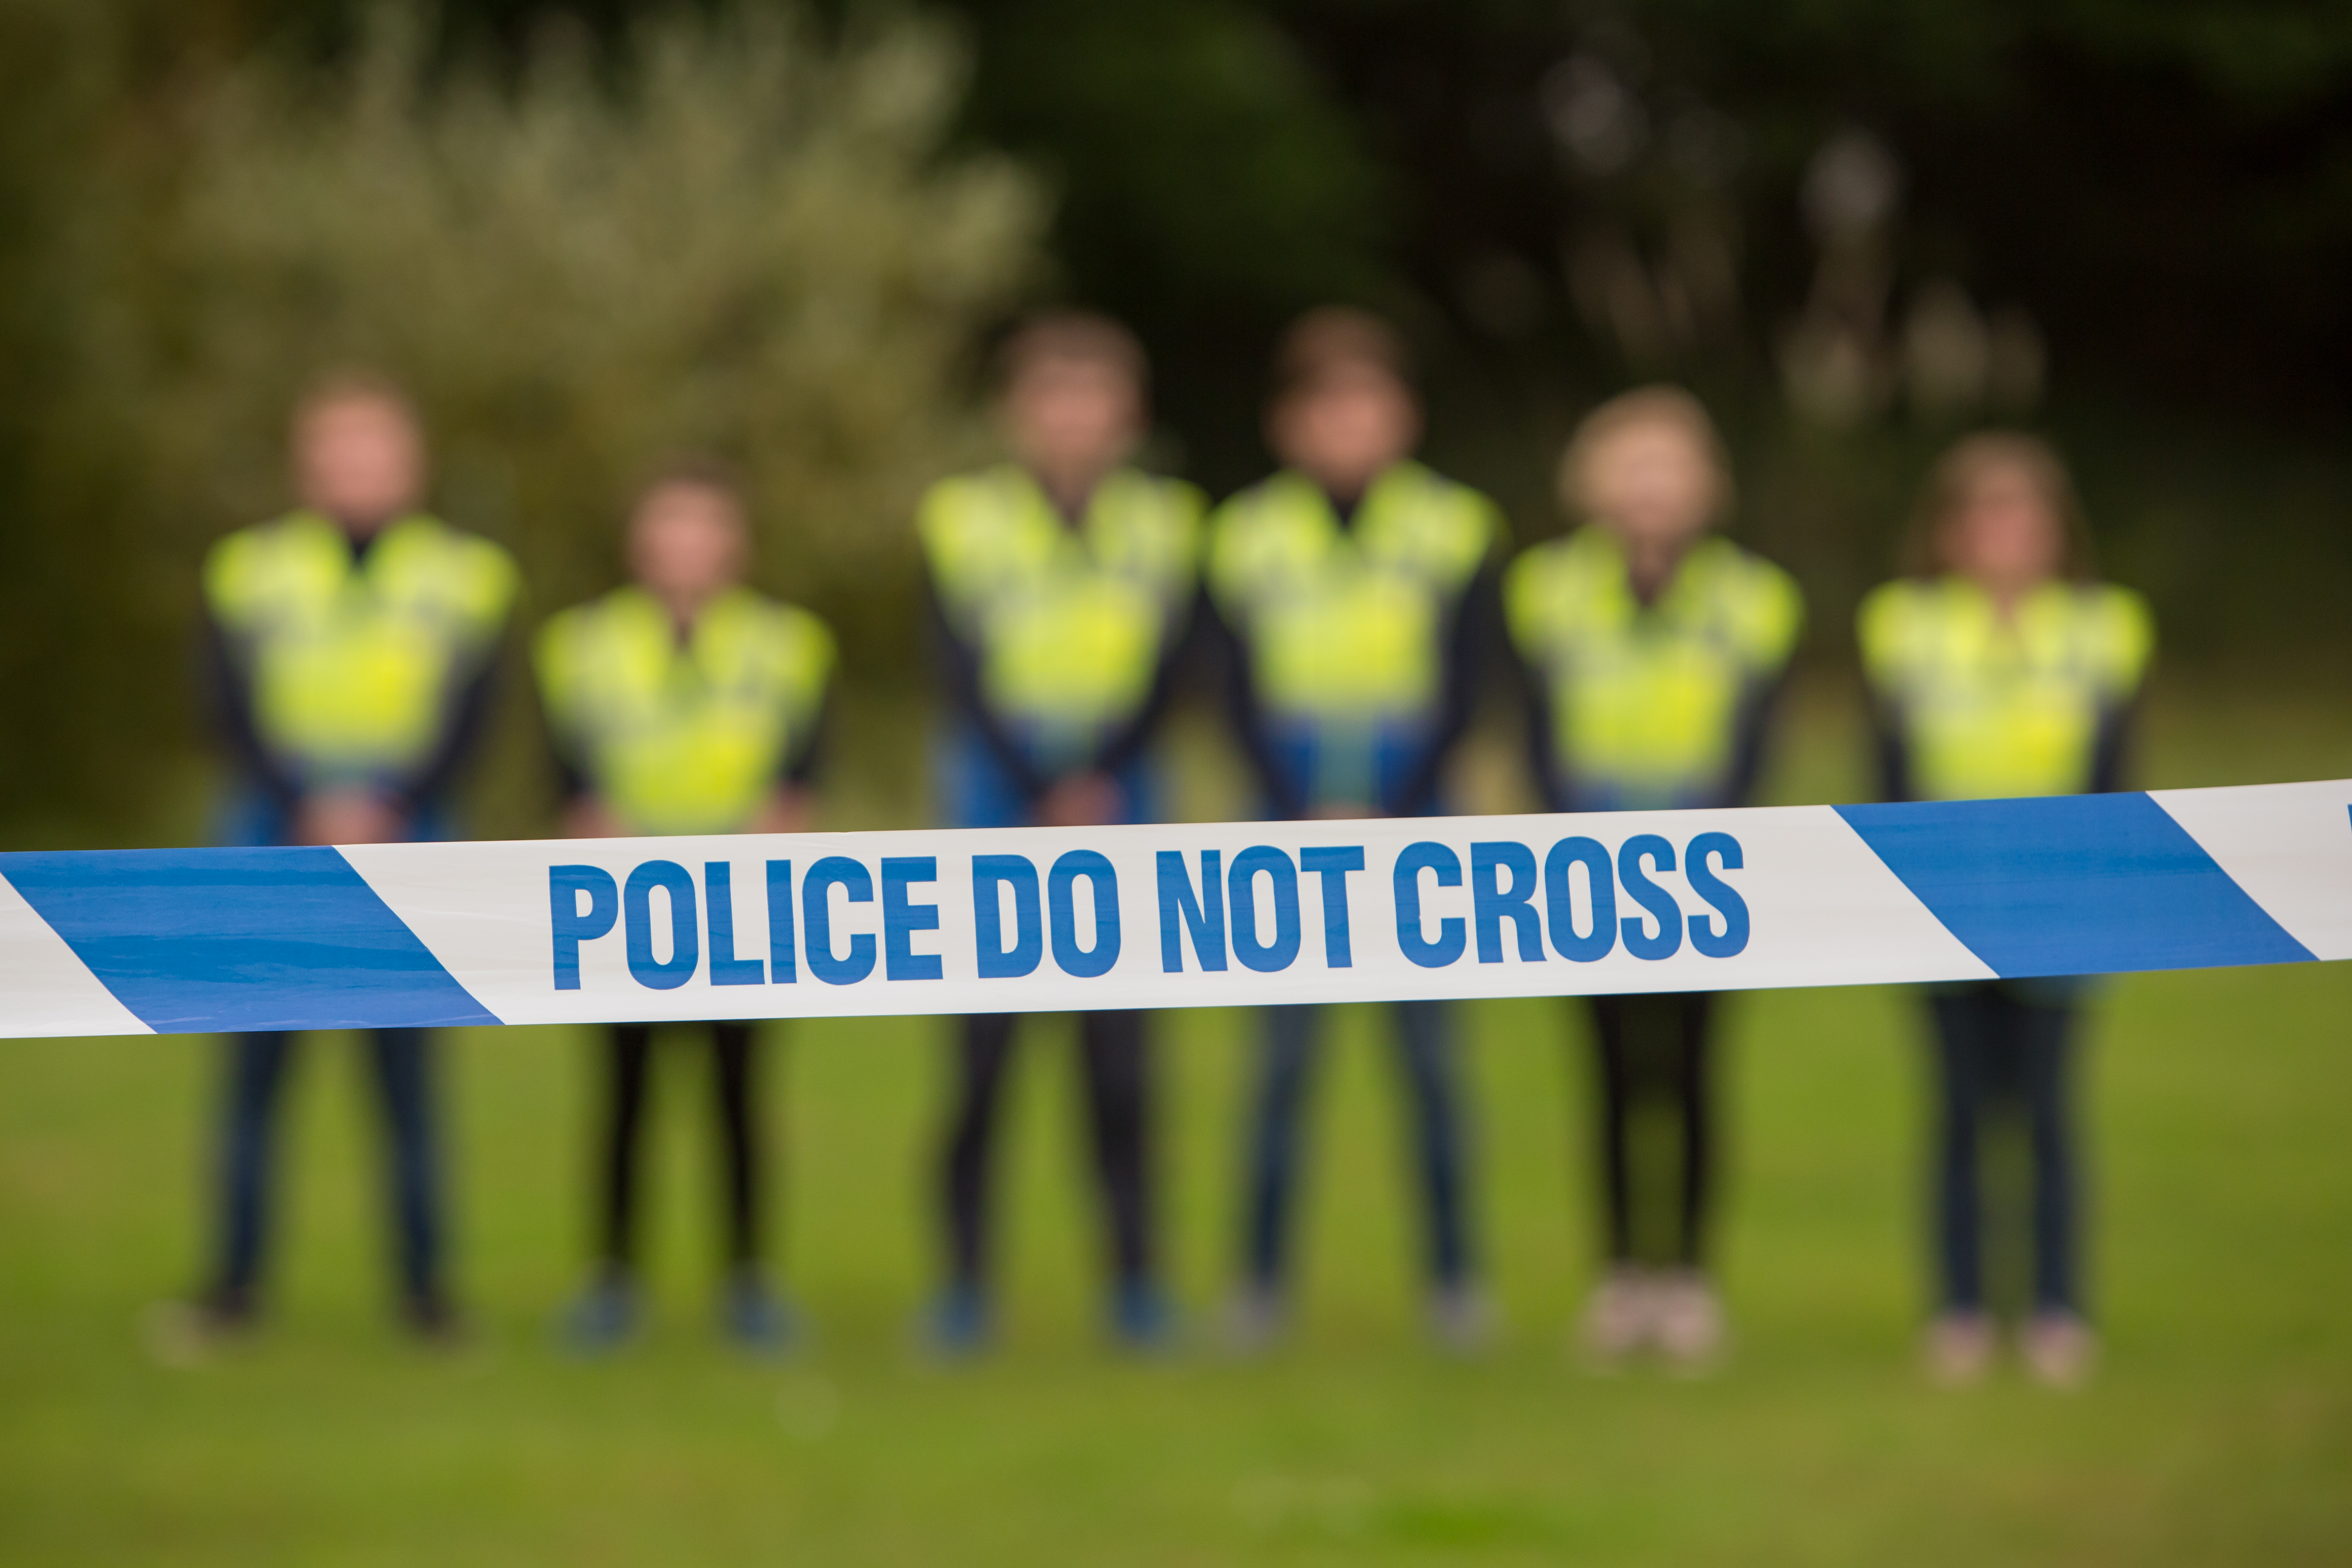 Public services students stood in front of 'police do not cross' tape.